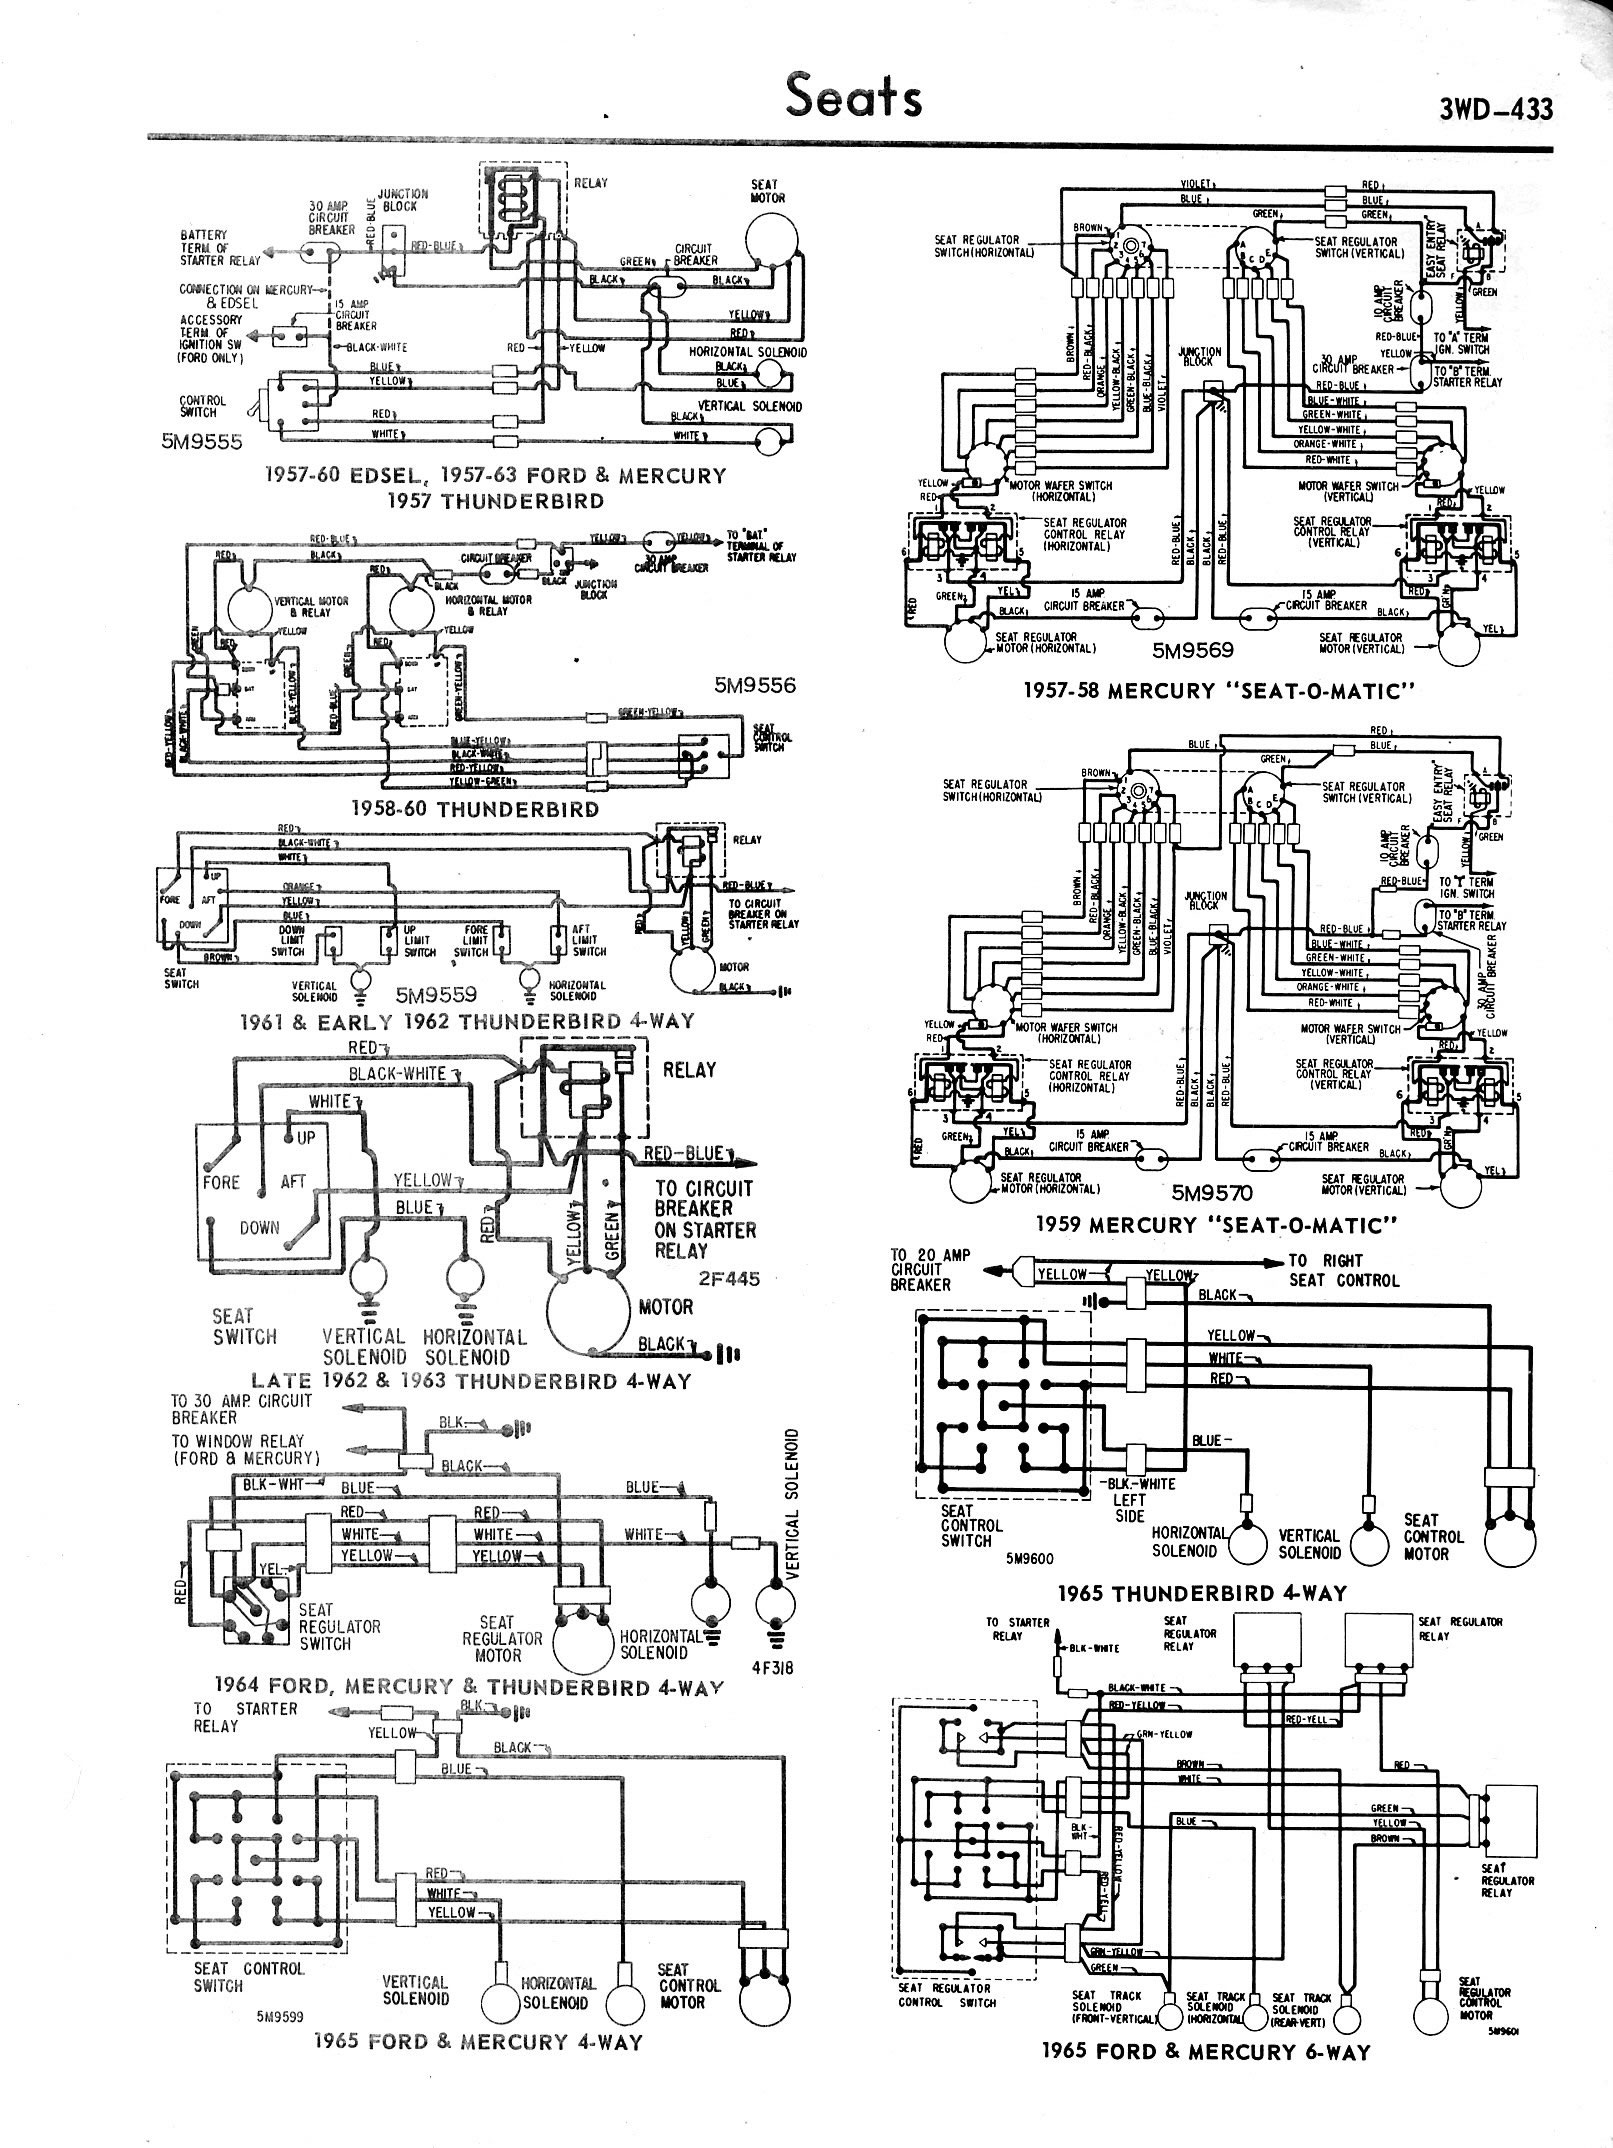 1958 thunderbird wiring diagram